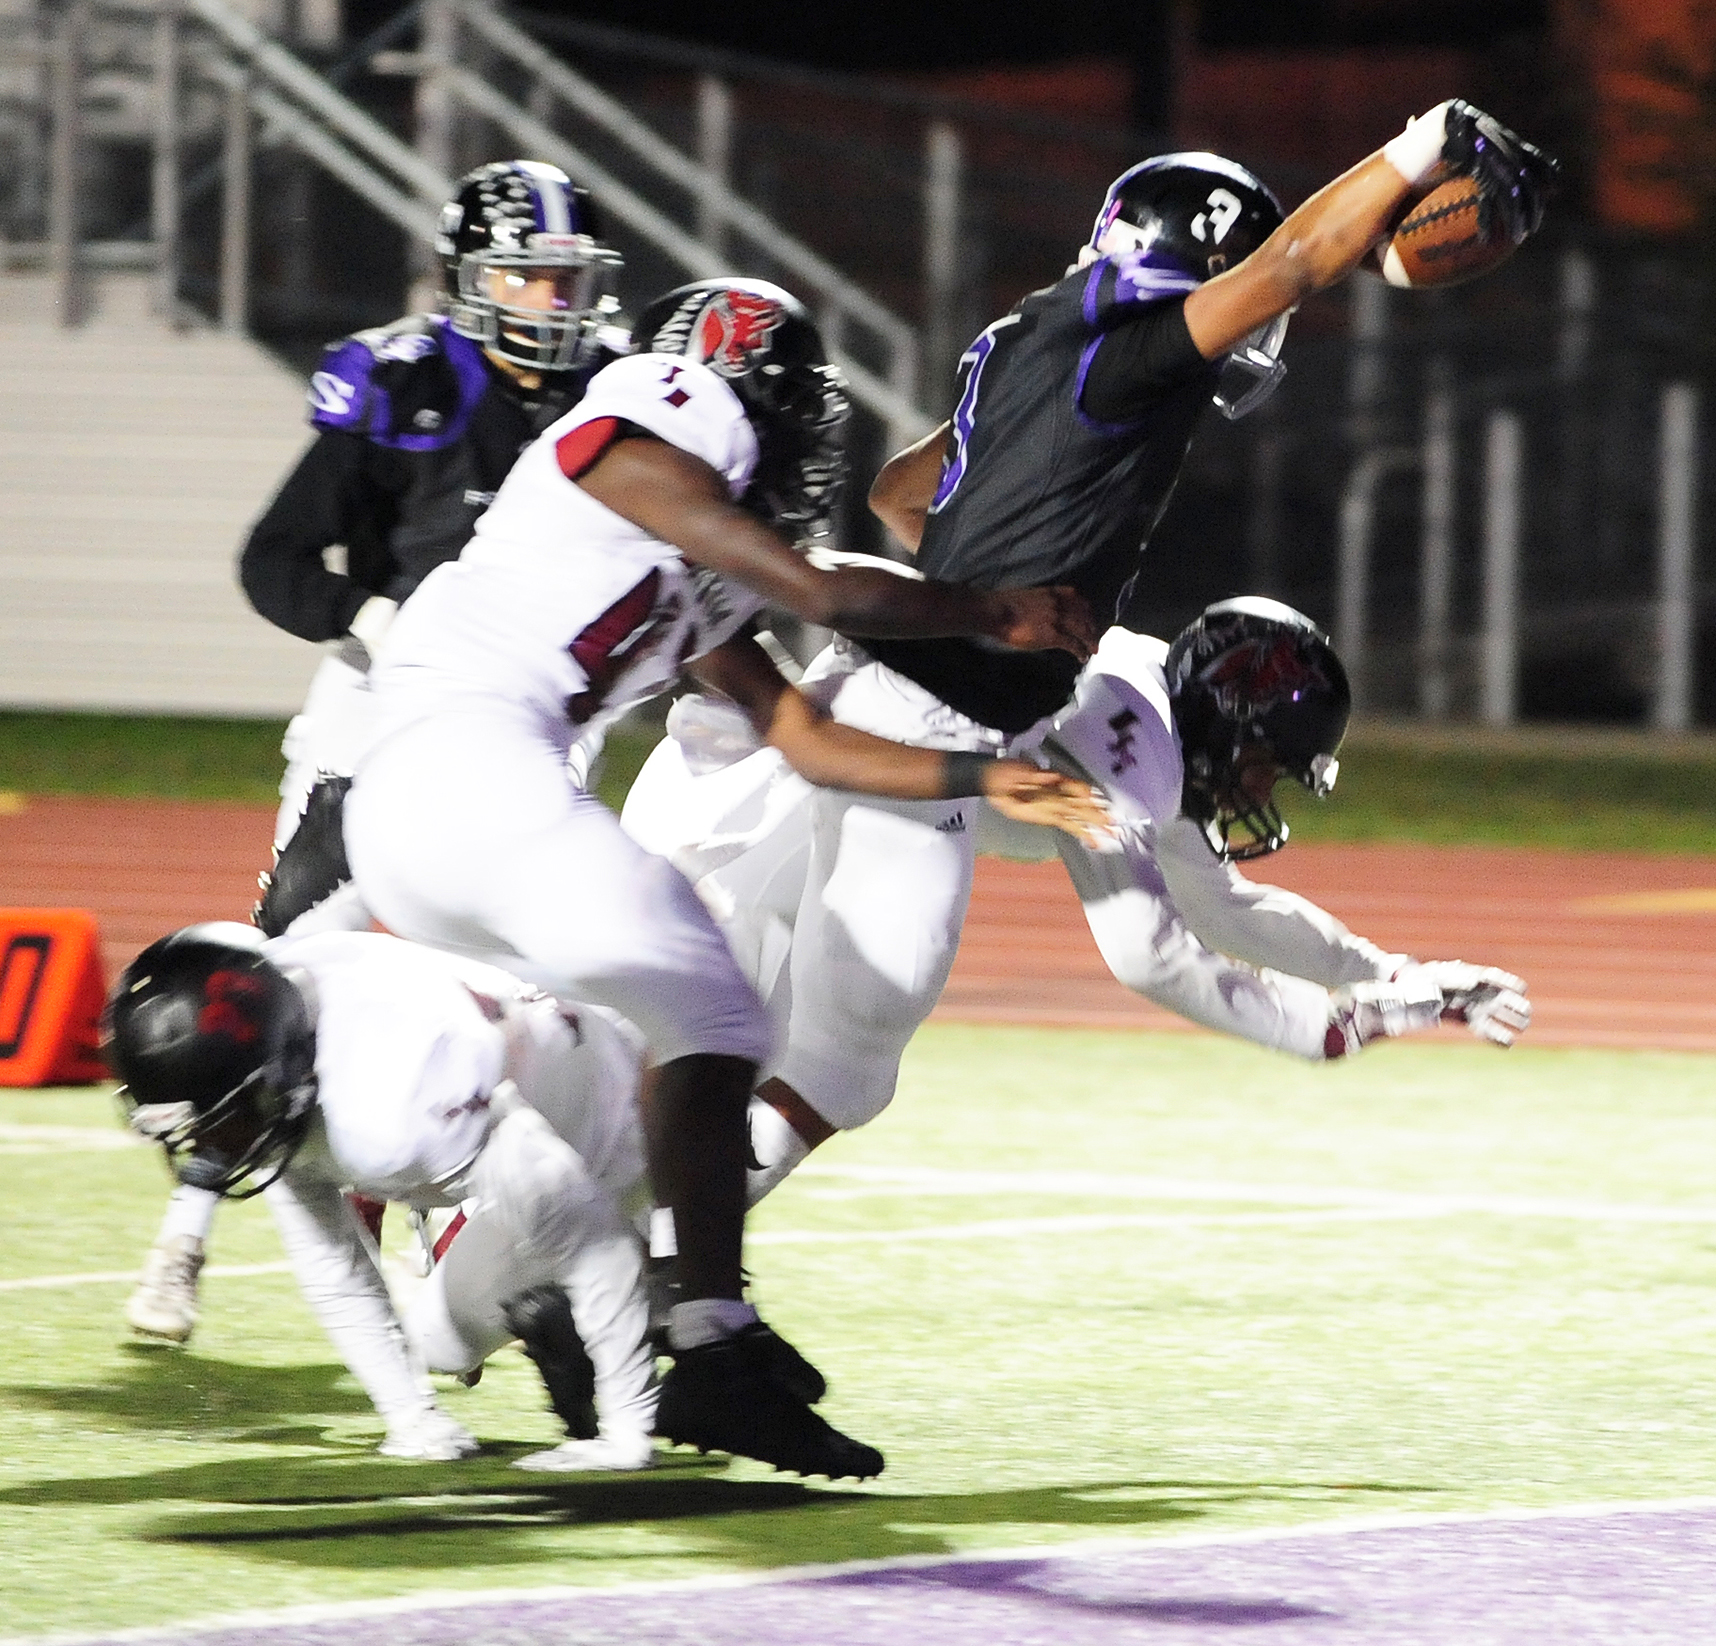 NICK INGRAM/Citizen photo Park Hill South senior wide receiver Jake Springer (3) reaches the ball over the goal line for a first half touchdown Friday, Oct. 7 against Lee's Summit North at Park Hill District Stadium in Kansas City, Mo.